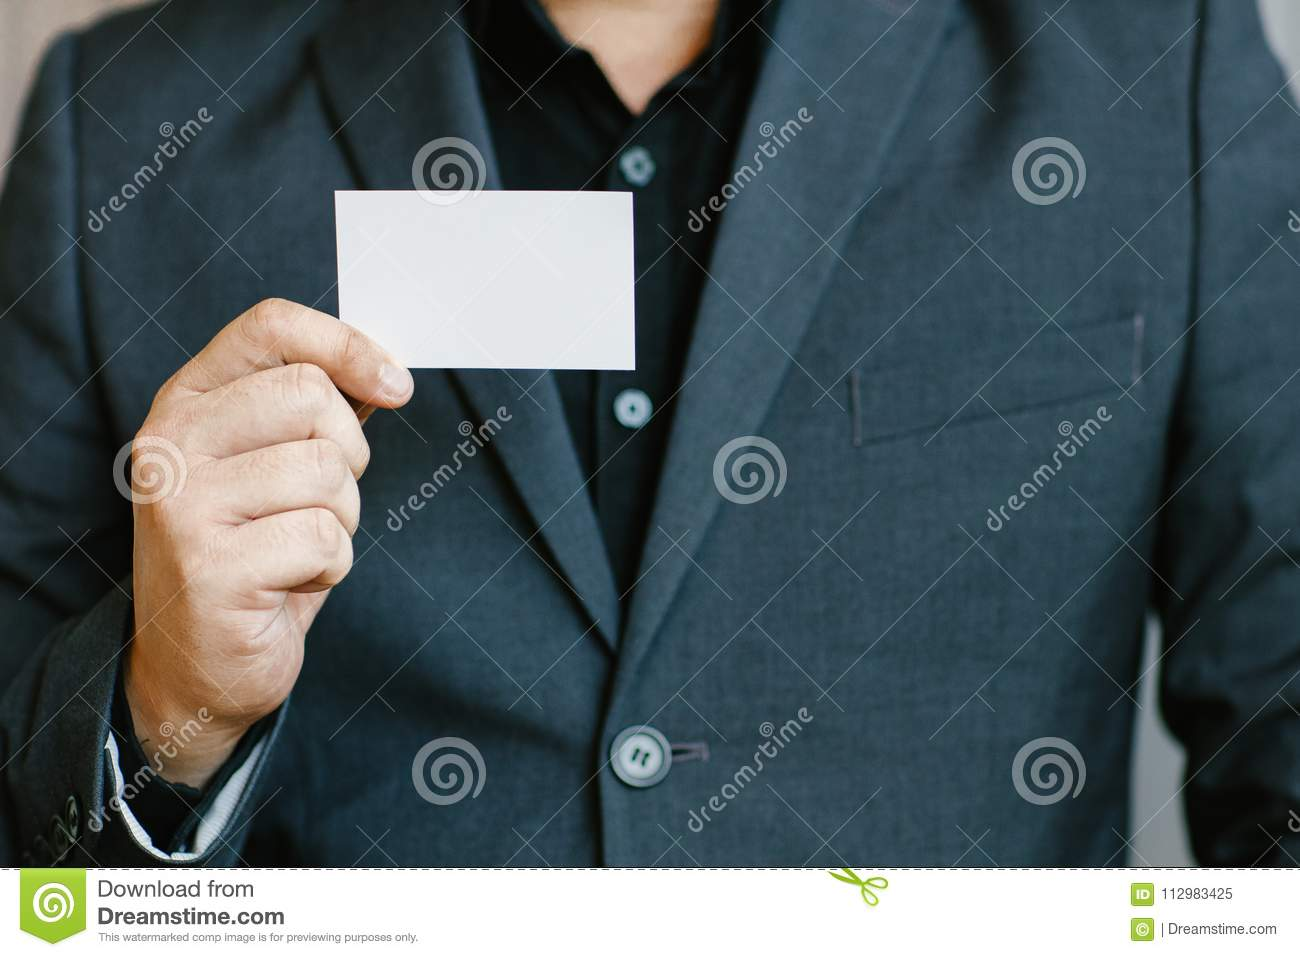 Man holding white business card stock image image of identity man holding white business cardman wearing blue shirt and showing blank white business card blurred background horizontal mockup smart asian business colourmoves